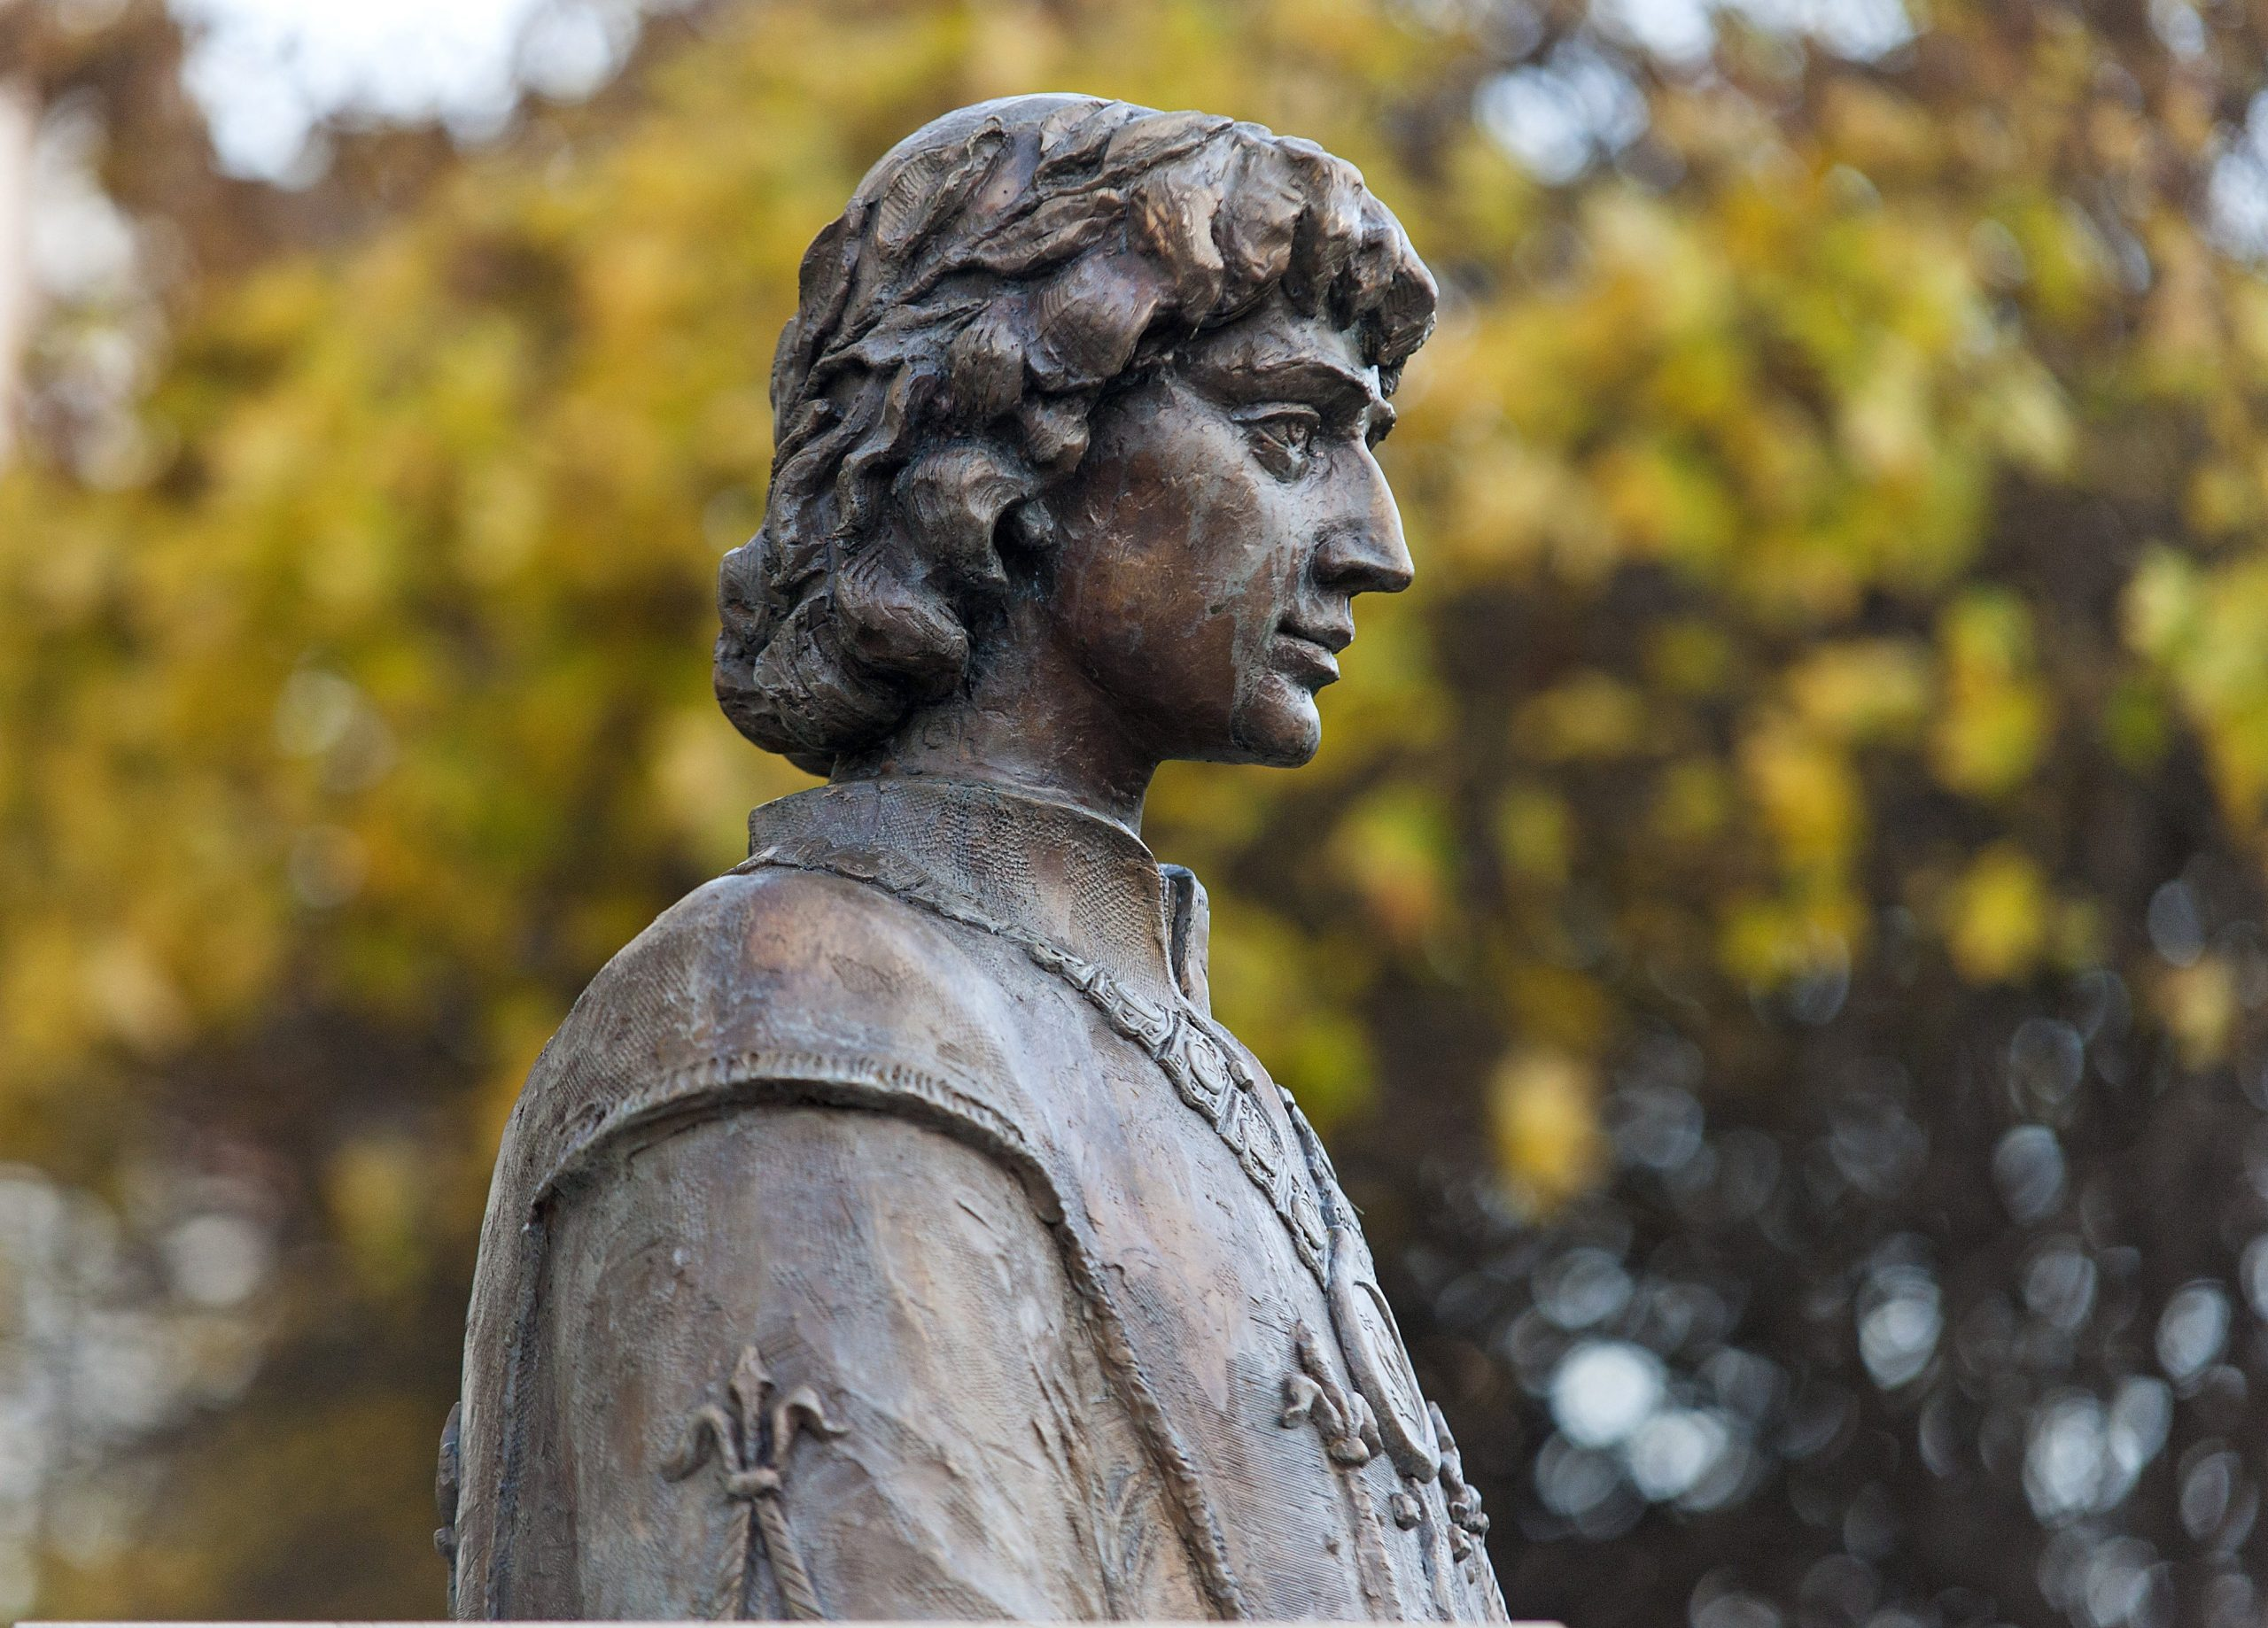 500 Year Old Remains of Legendary Hungarian King Matthias to Get Worthy Burial?